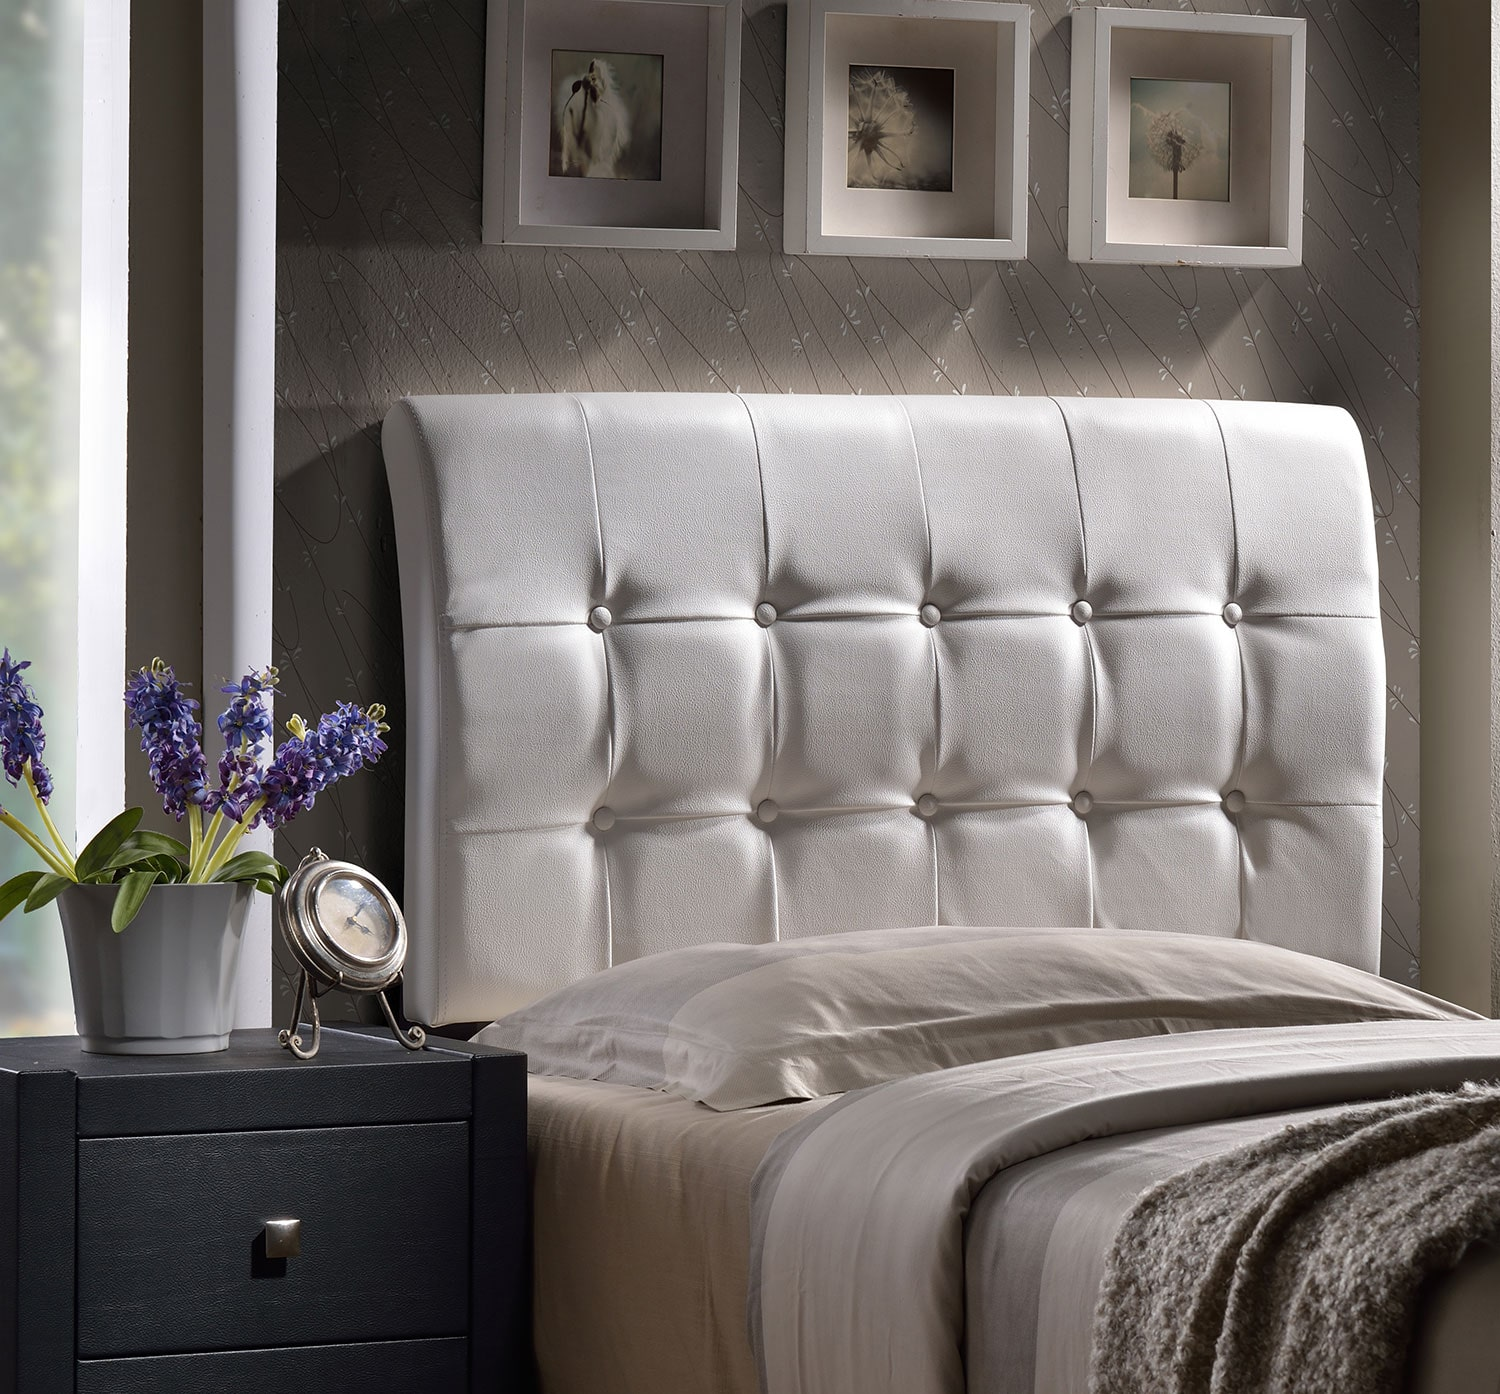 Kids Furniture - Lusso Upholstered Headboard